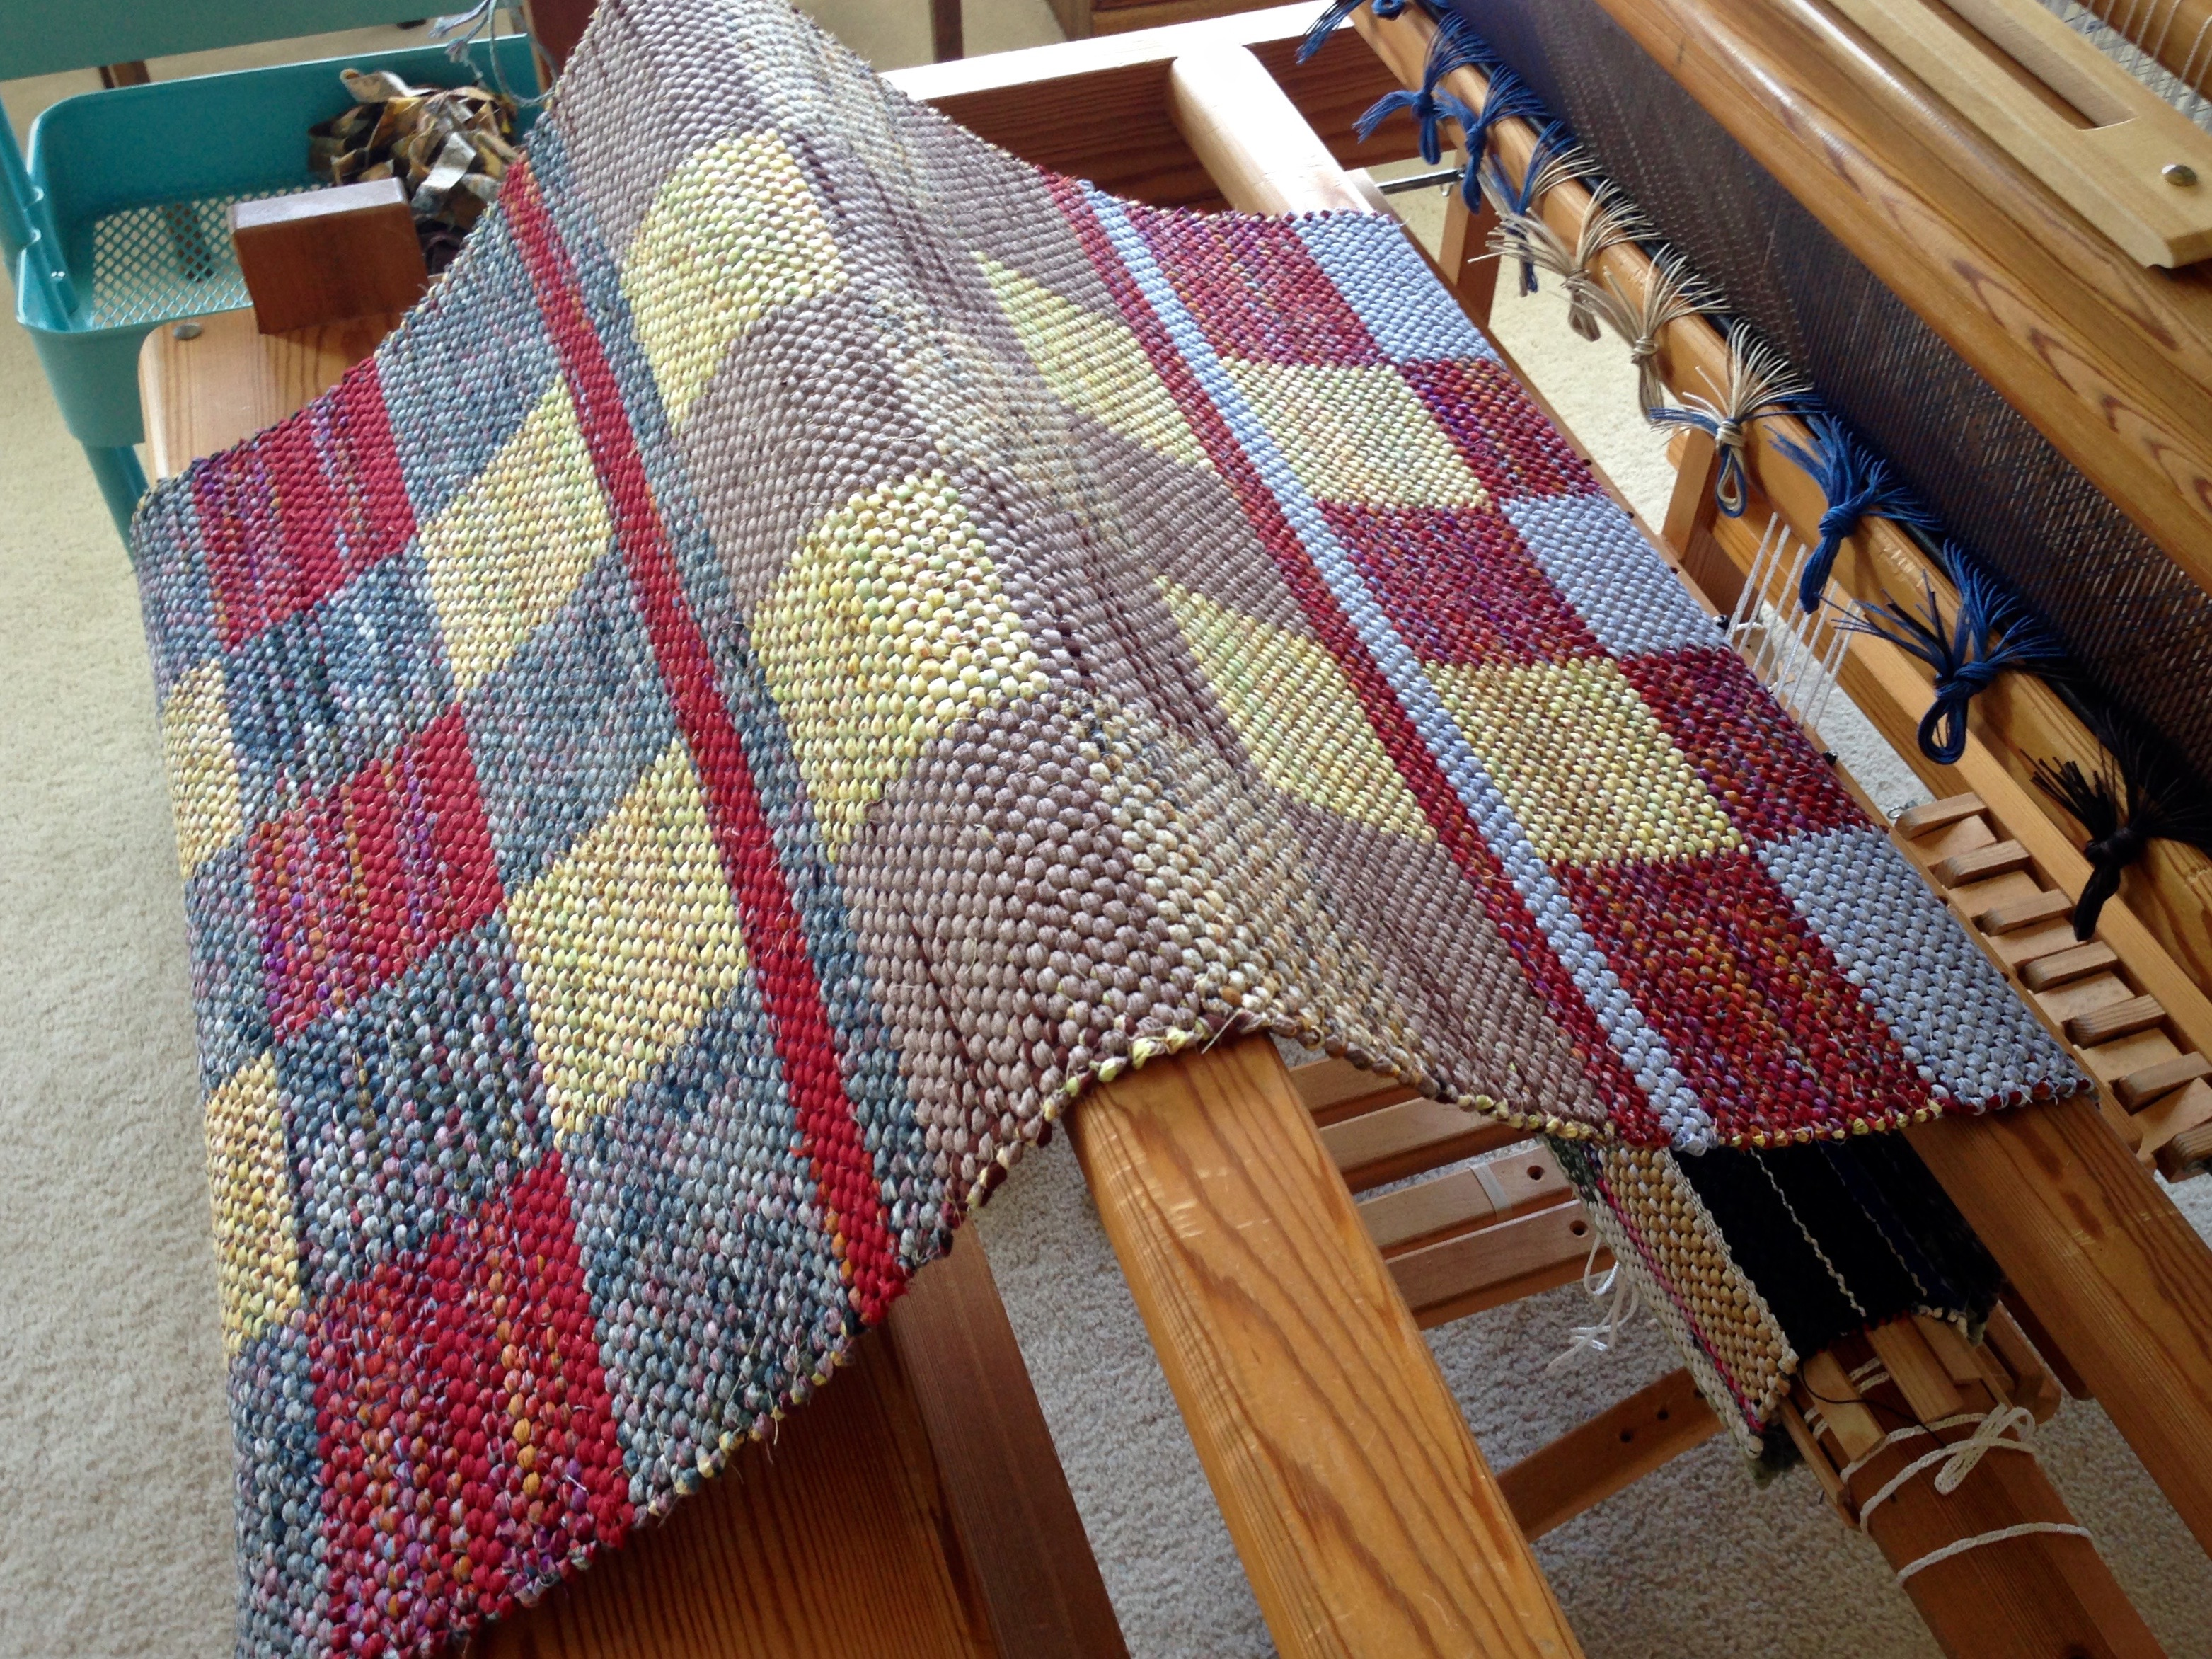 When A New Rag Rug Is Unrolled Warped For Good